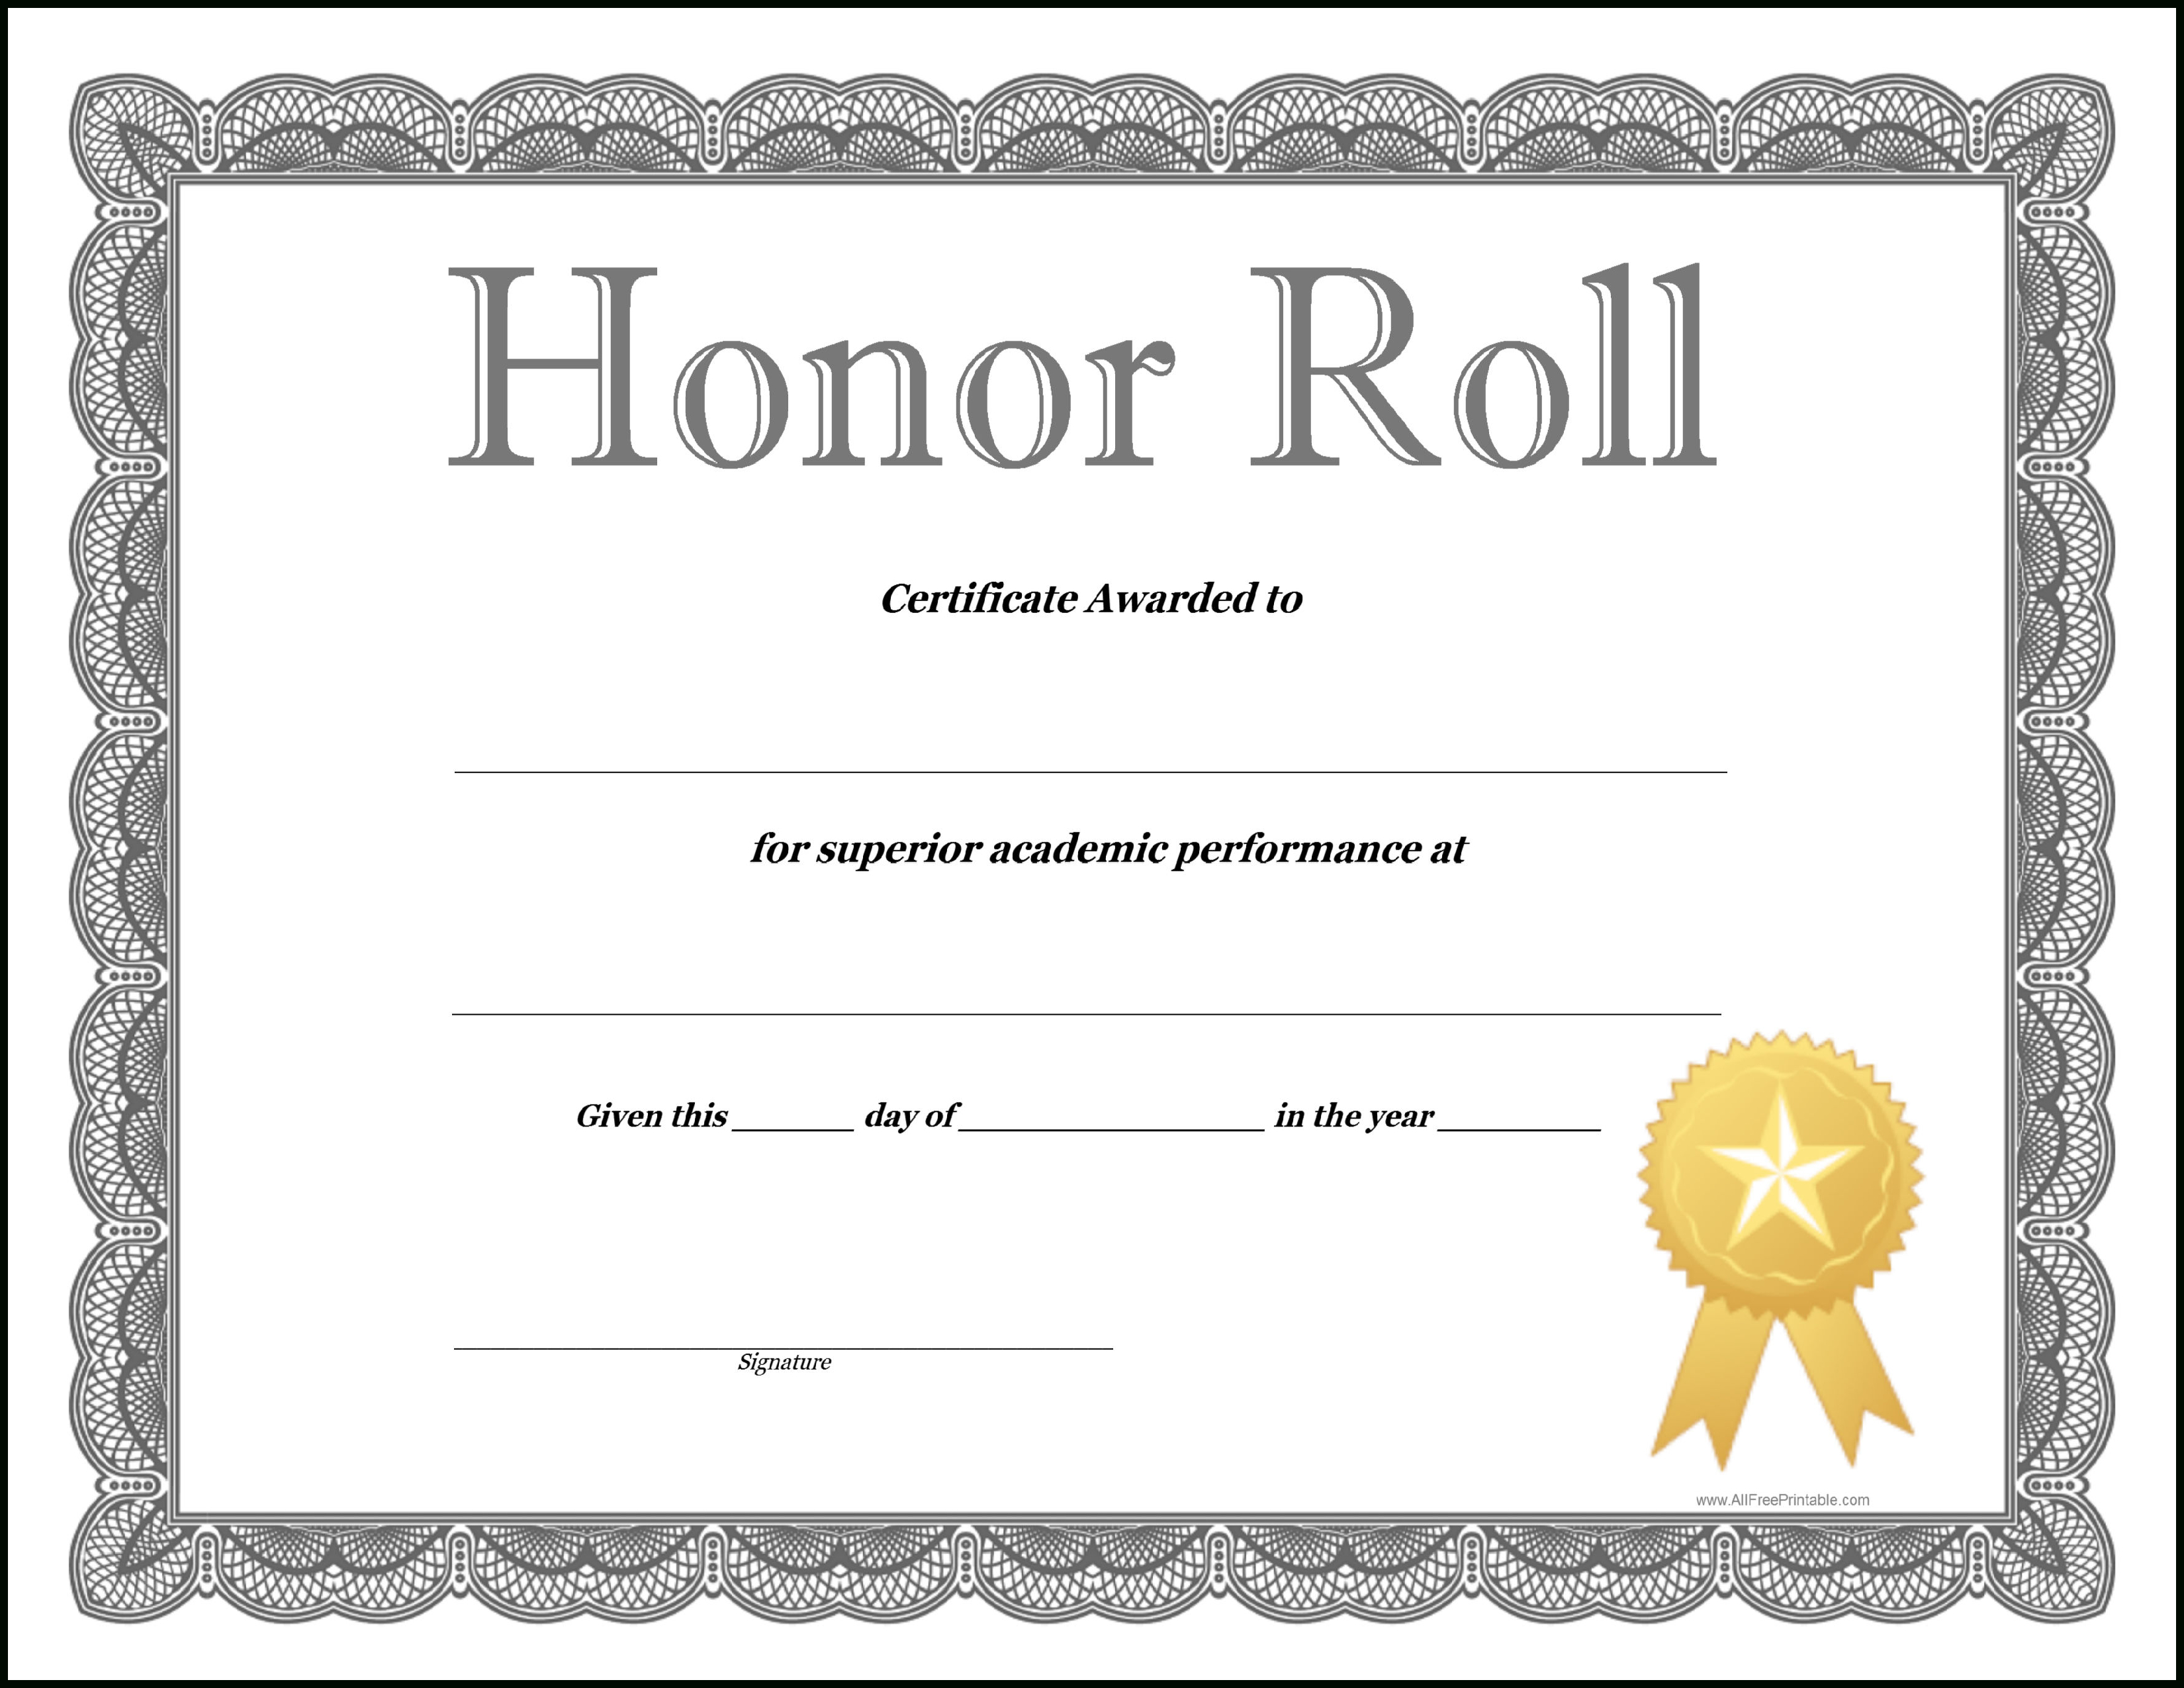 Honor Roll Certificate Template - How To Craft A Professional - Free Printable Honor Roll Certificates Kids